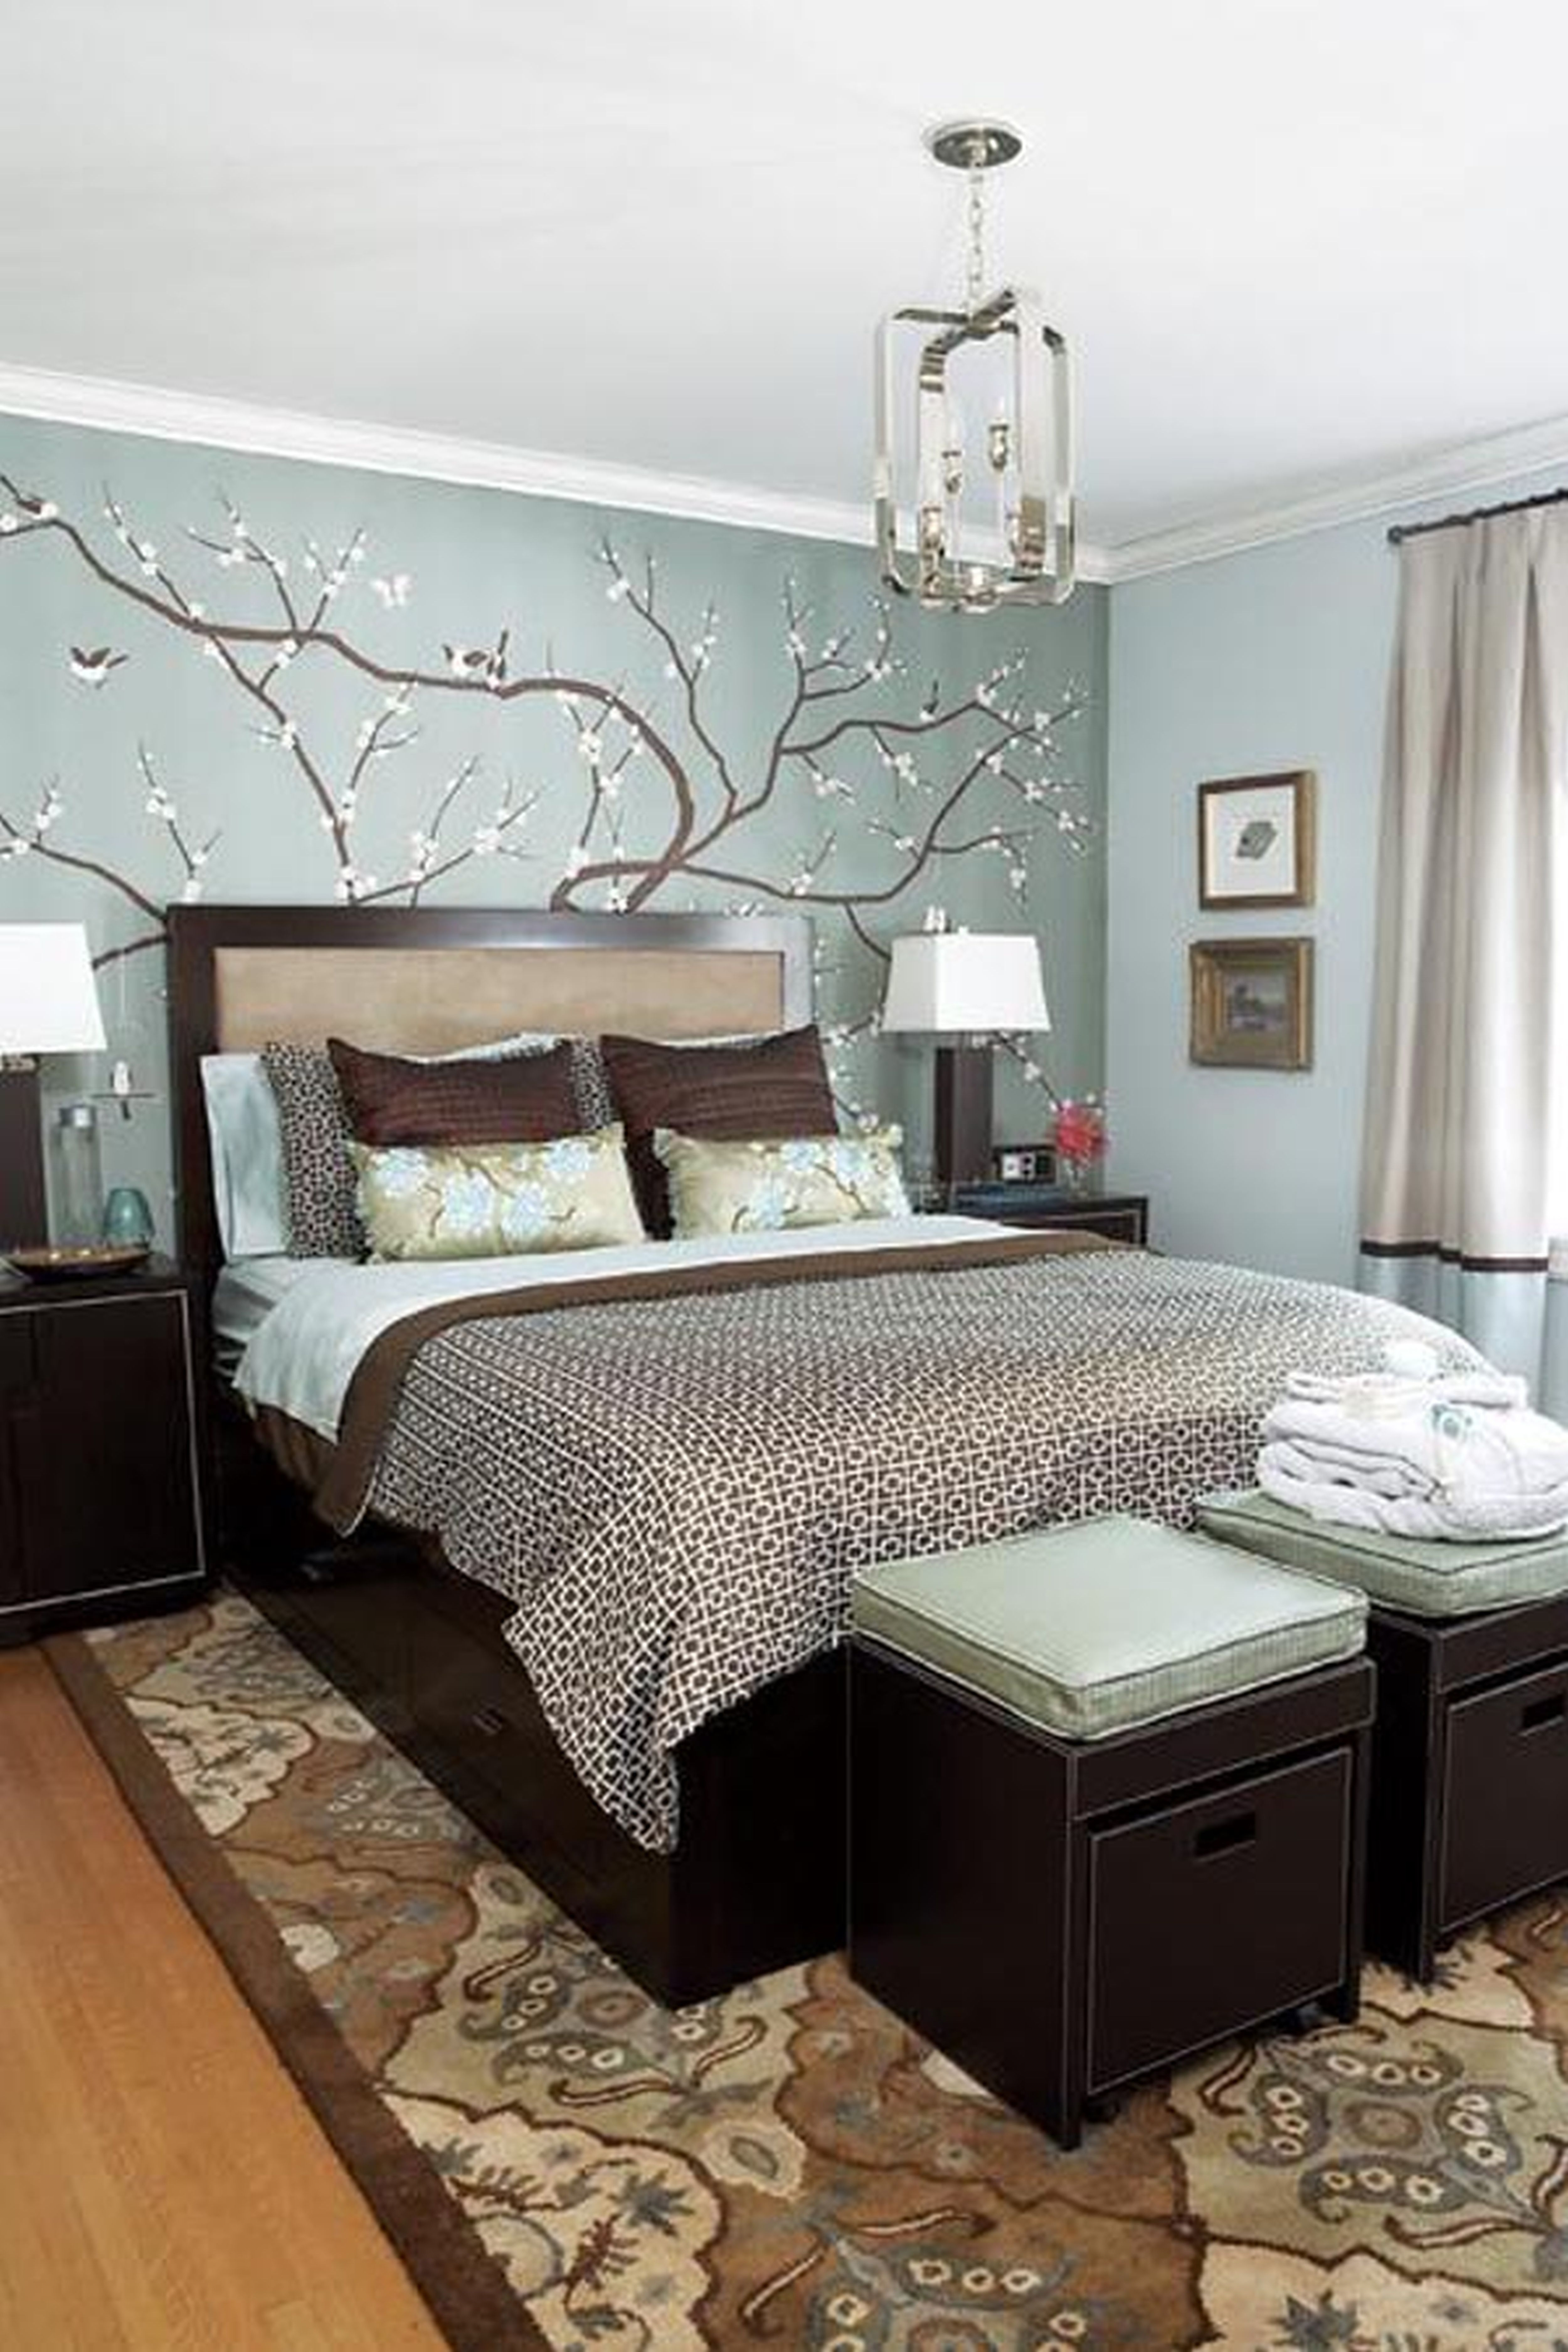 gorgeous bedroom designs. Check Out Gorgeous Bedroom Decorating Ideas. Designs Don\u0027t Have To Mean A Complete Overhaul, Sometimes Tiny Tweak Like Fairy Lights Can